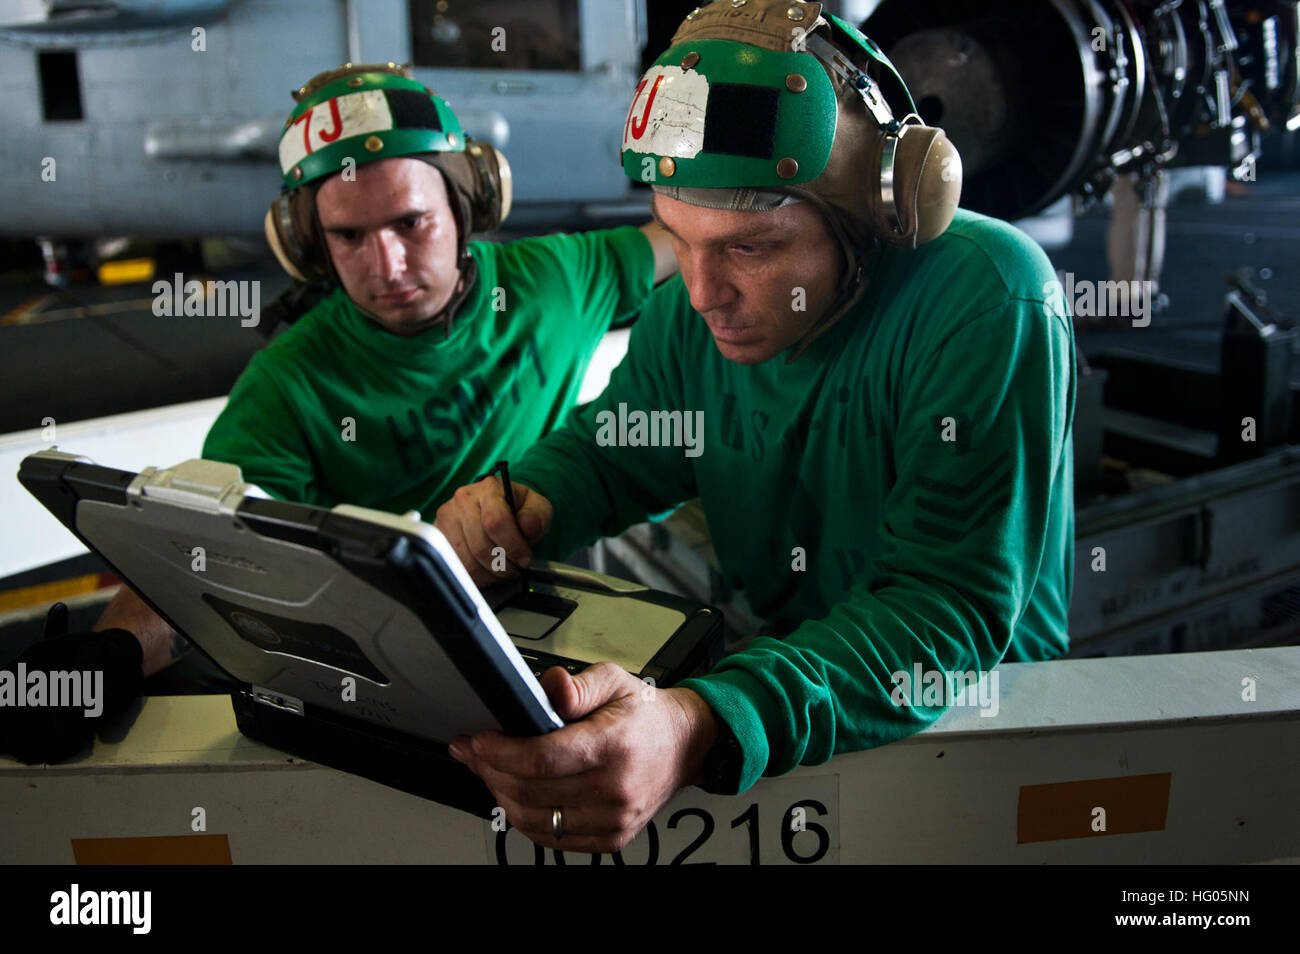 110919-N-BT887-455 INDIAN OCEAN (Sept. 19, 2011) Aviation Machinist's Mate 1st Class Marcus Campagna, from Huntington - Stock Image